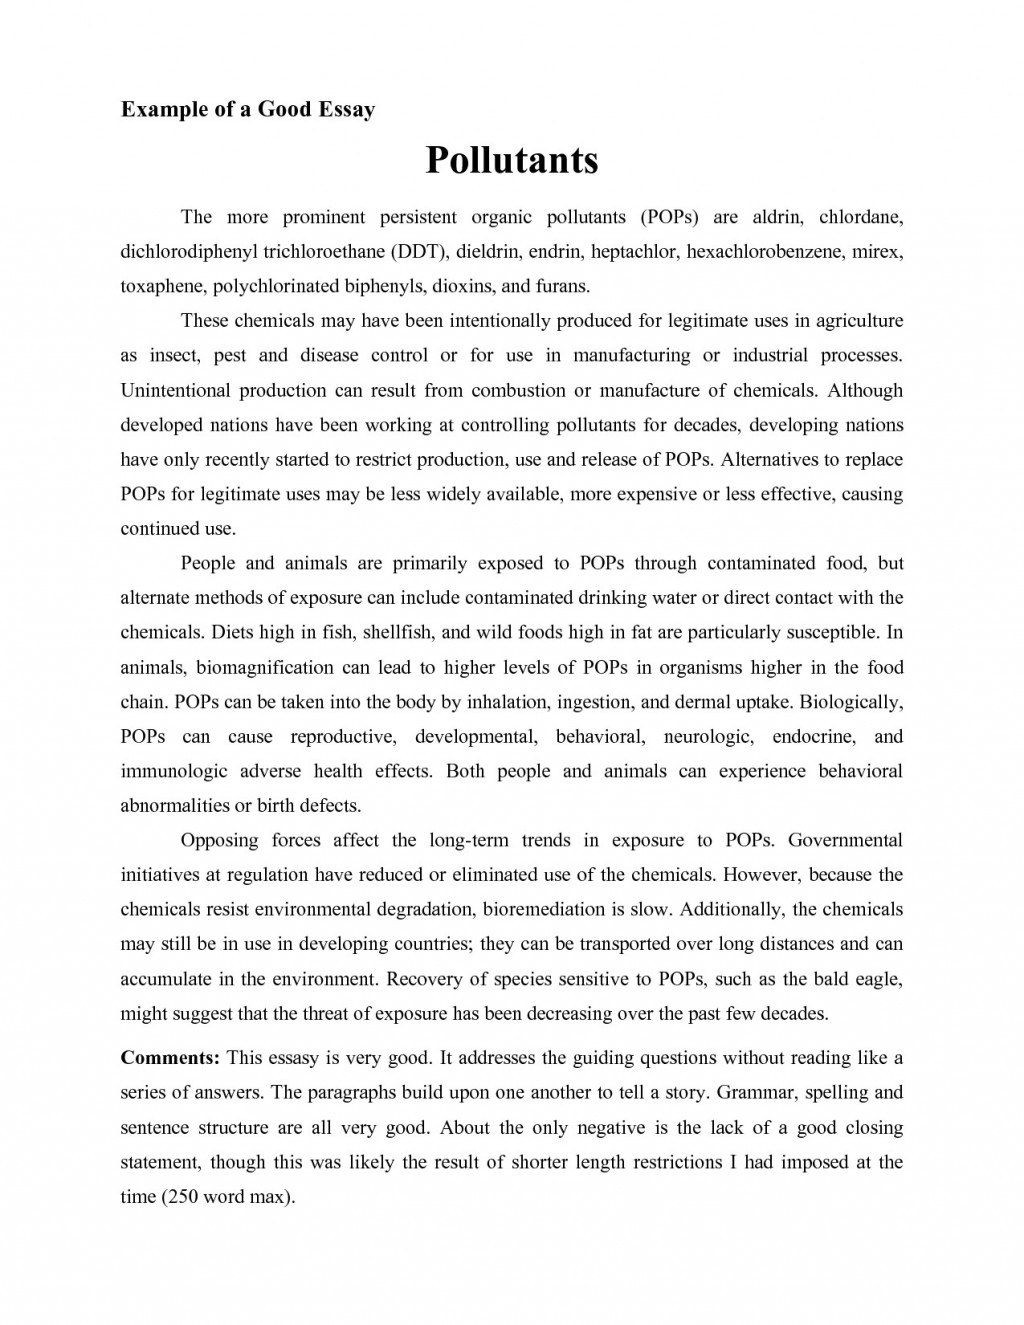 003 Causal Analysis Essay Examples New Template Example Selo L Striking Easy Topics Topic Ideas Large